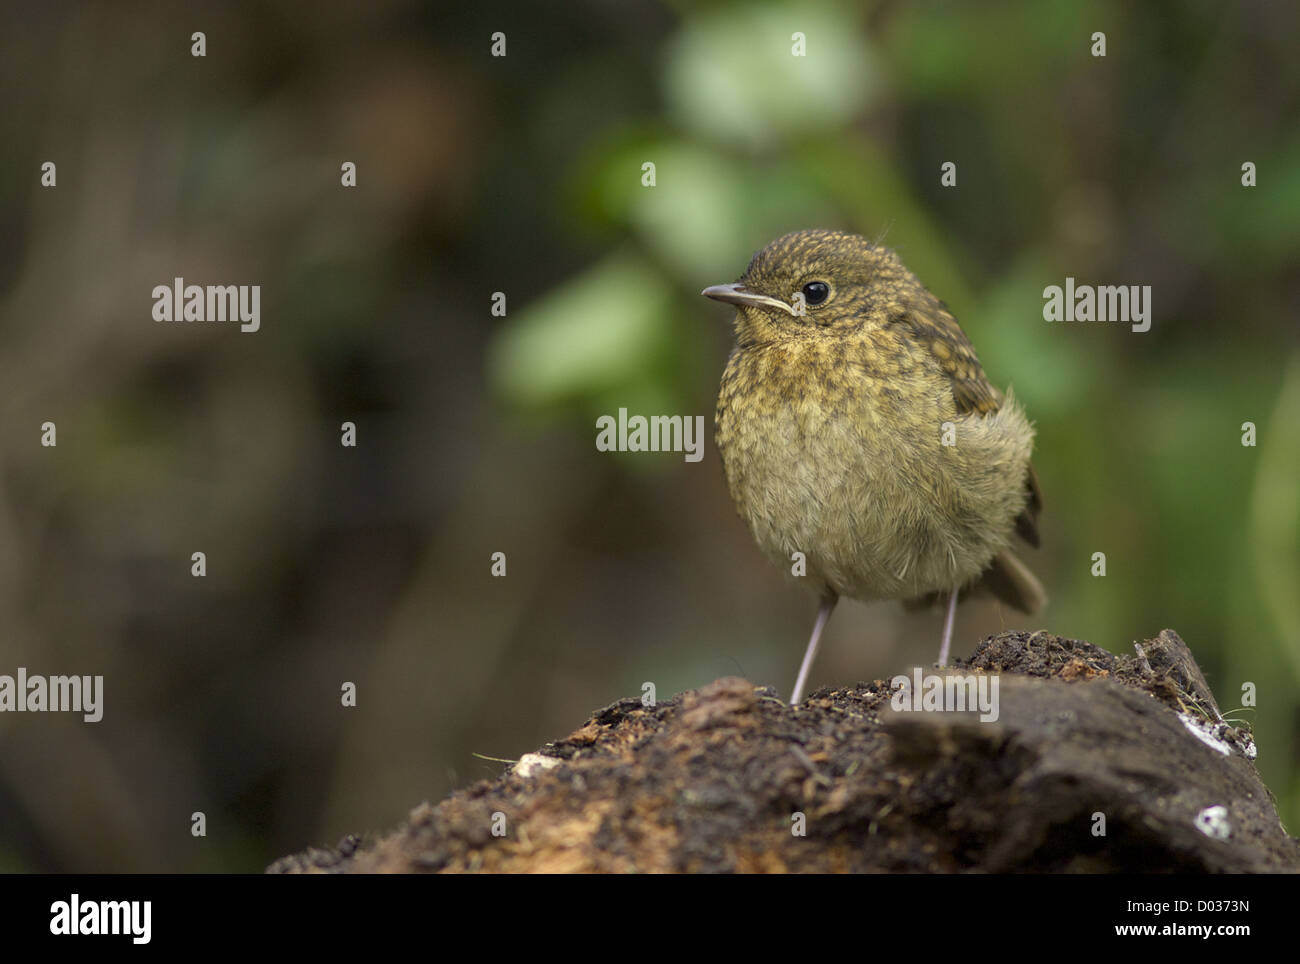 Juvenile Robin on a tree stump - Stock Image